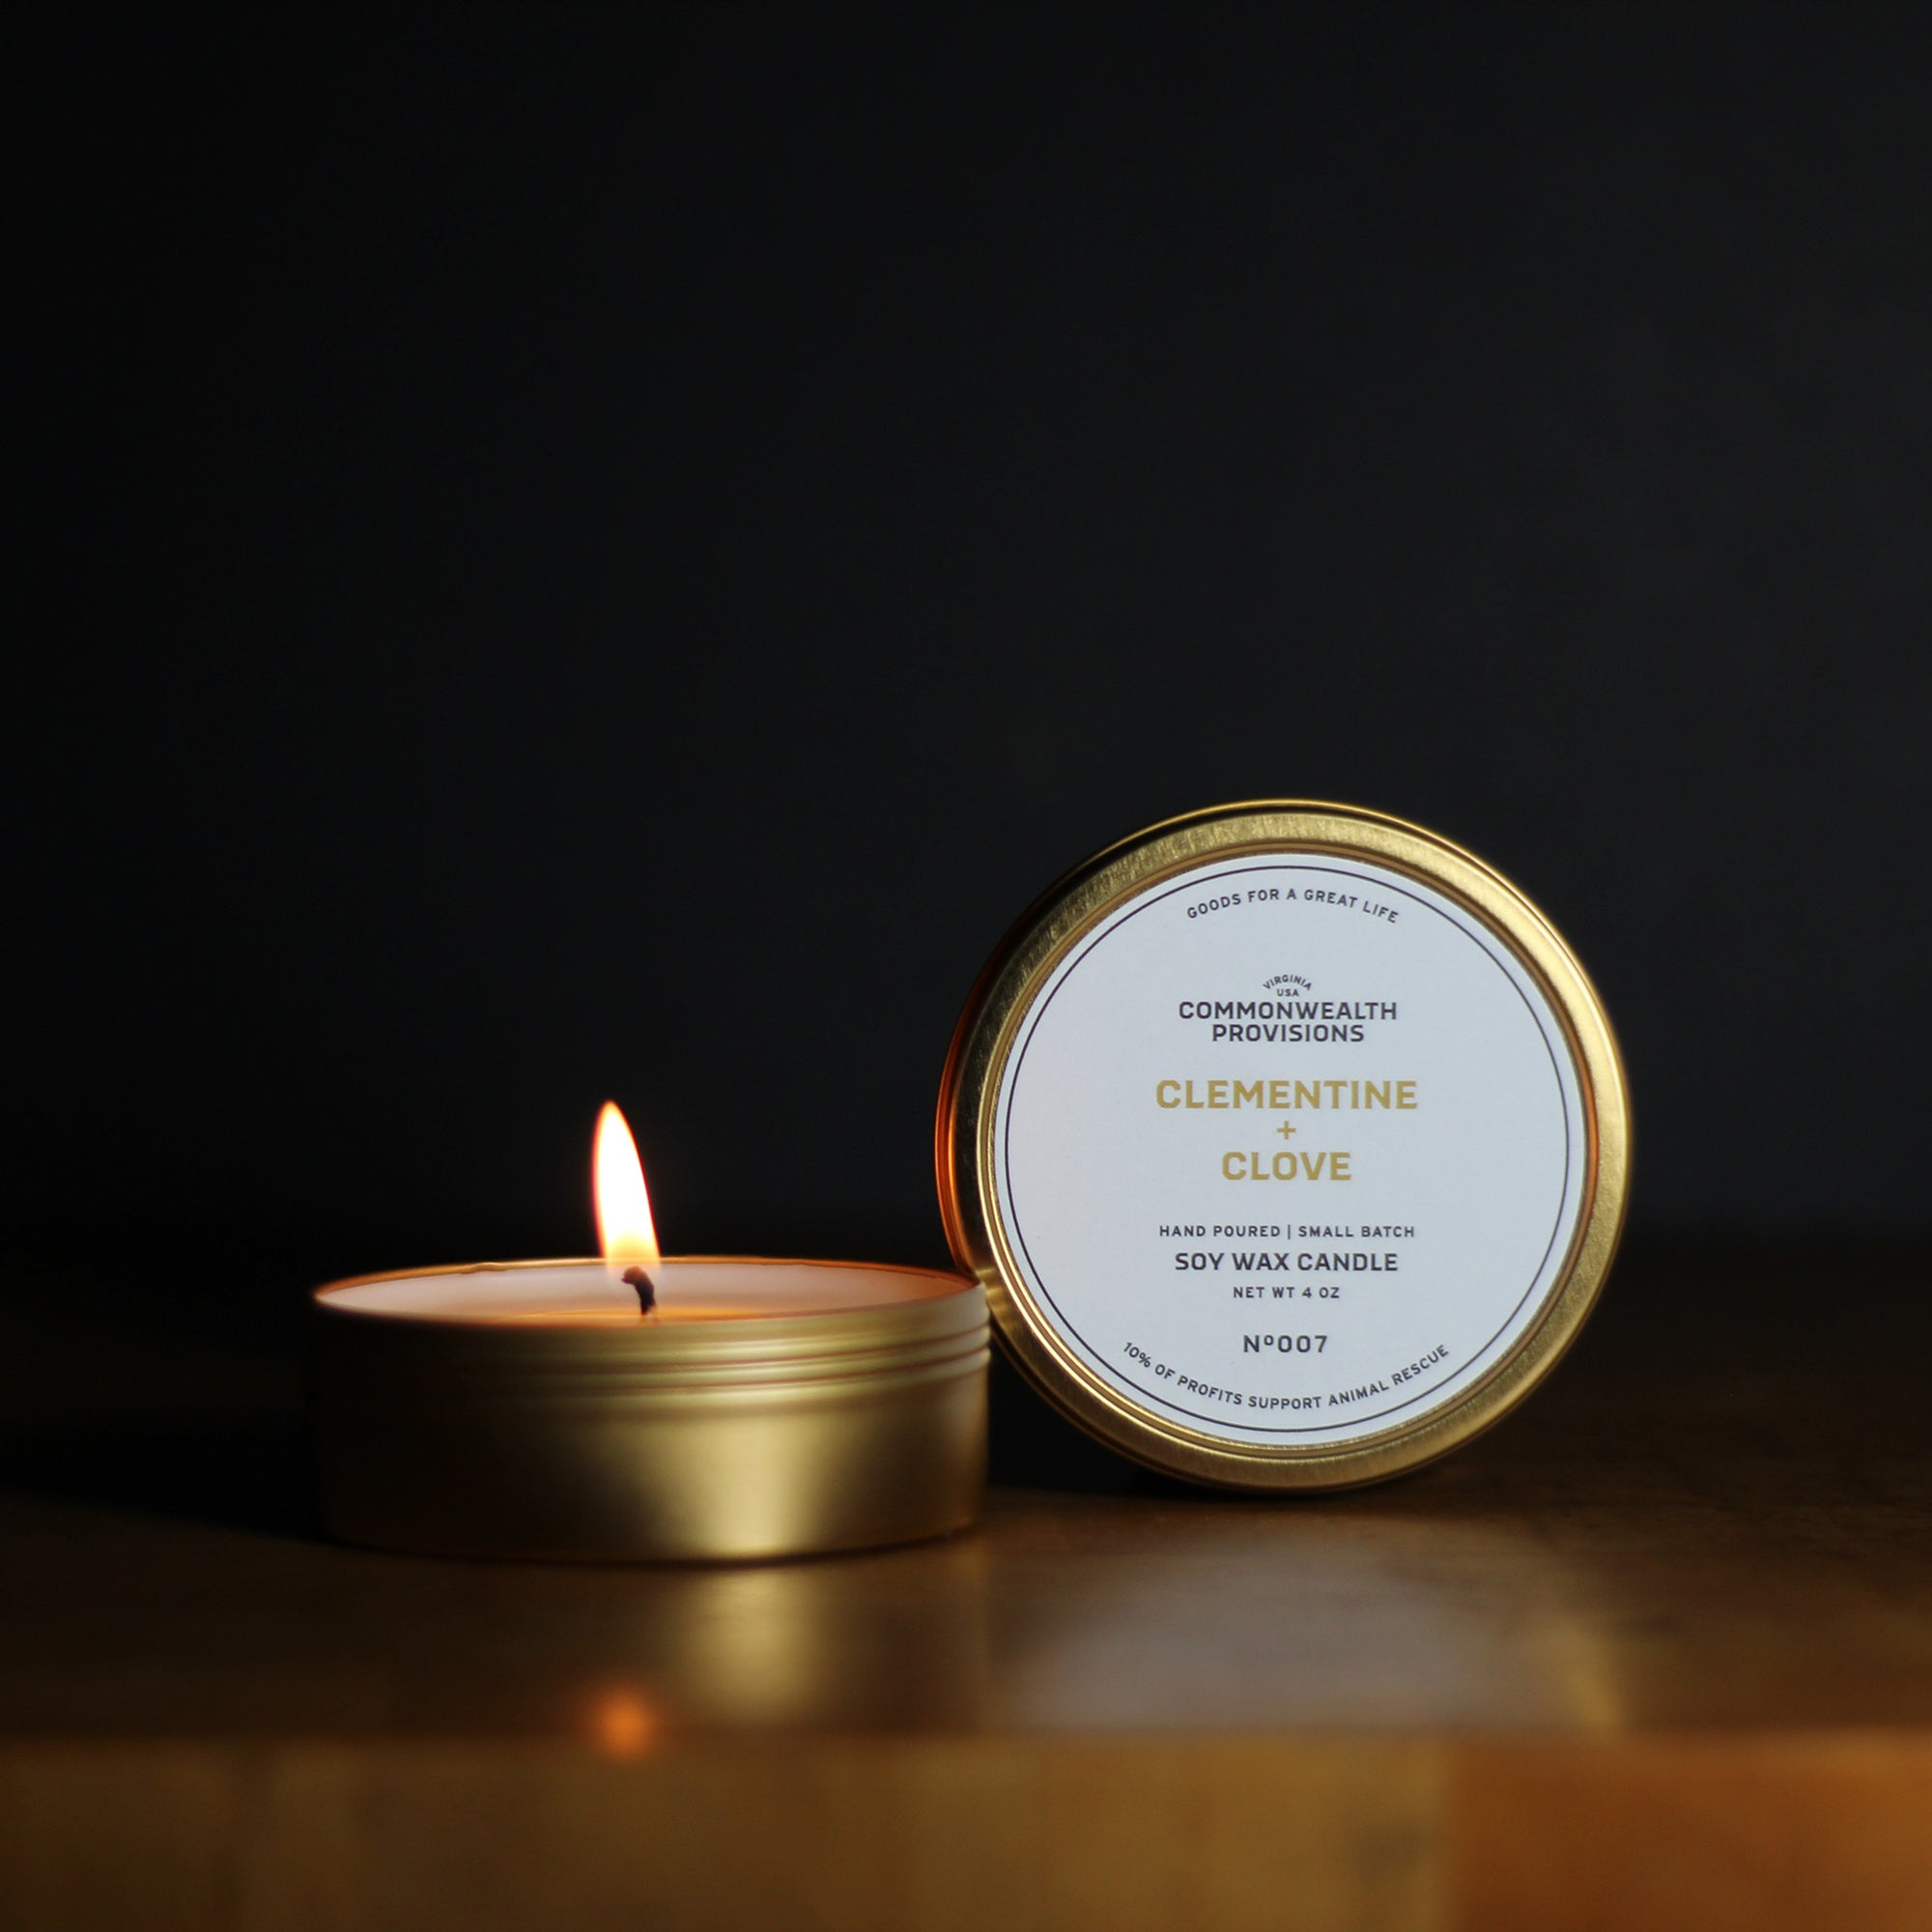 Commonwealth Provisions Clementine + Clove Travel Candle